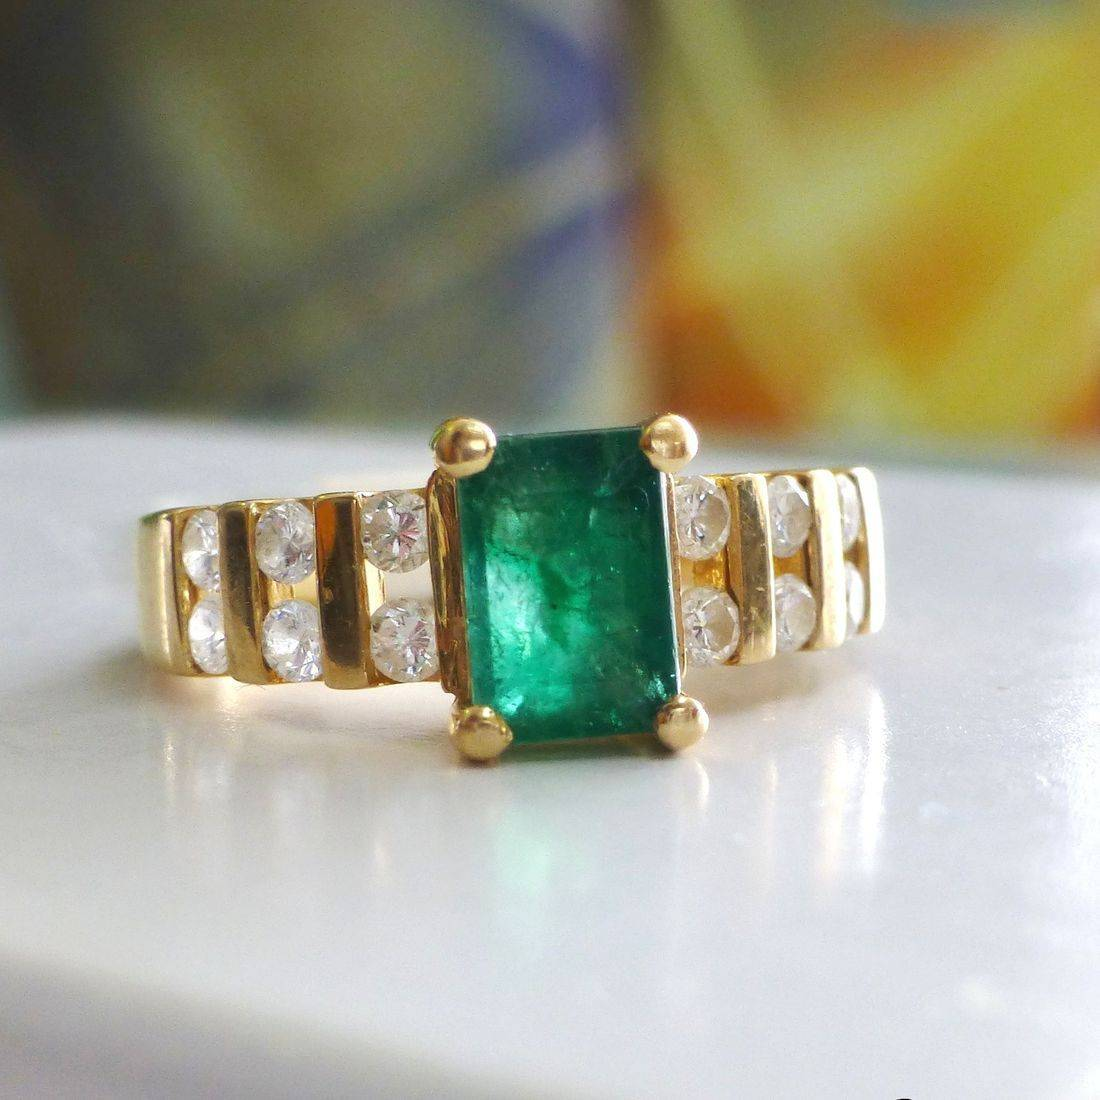 Emerald Cut Green Emerald Prong Set in The Center Of A Yellow Gold Wide Band With Three Rows Of Round Cut Diamond Pairs On The Shank